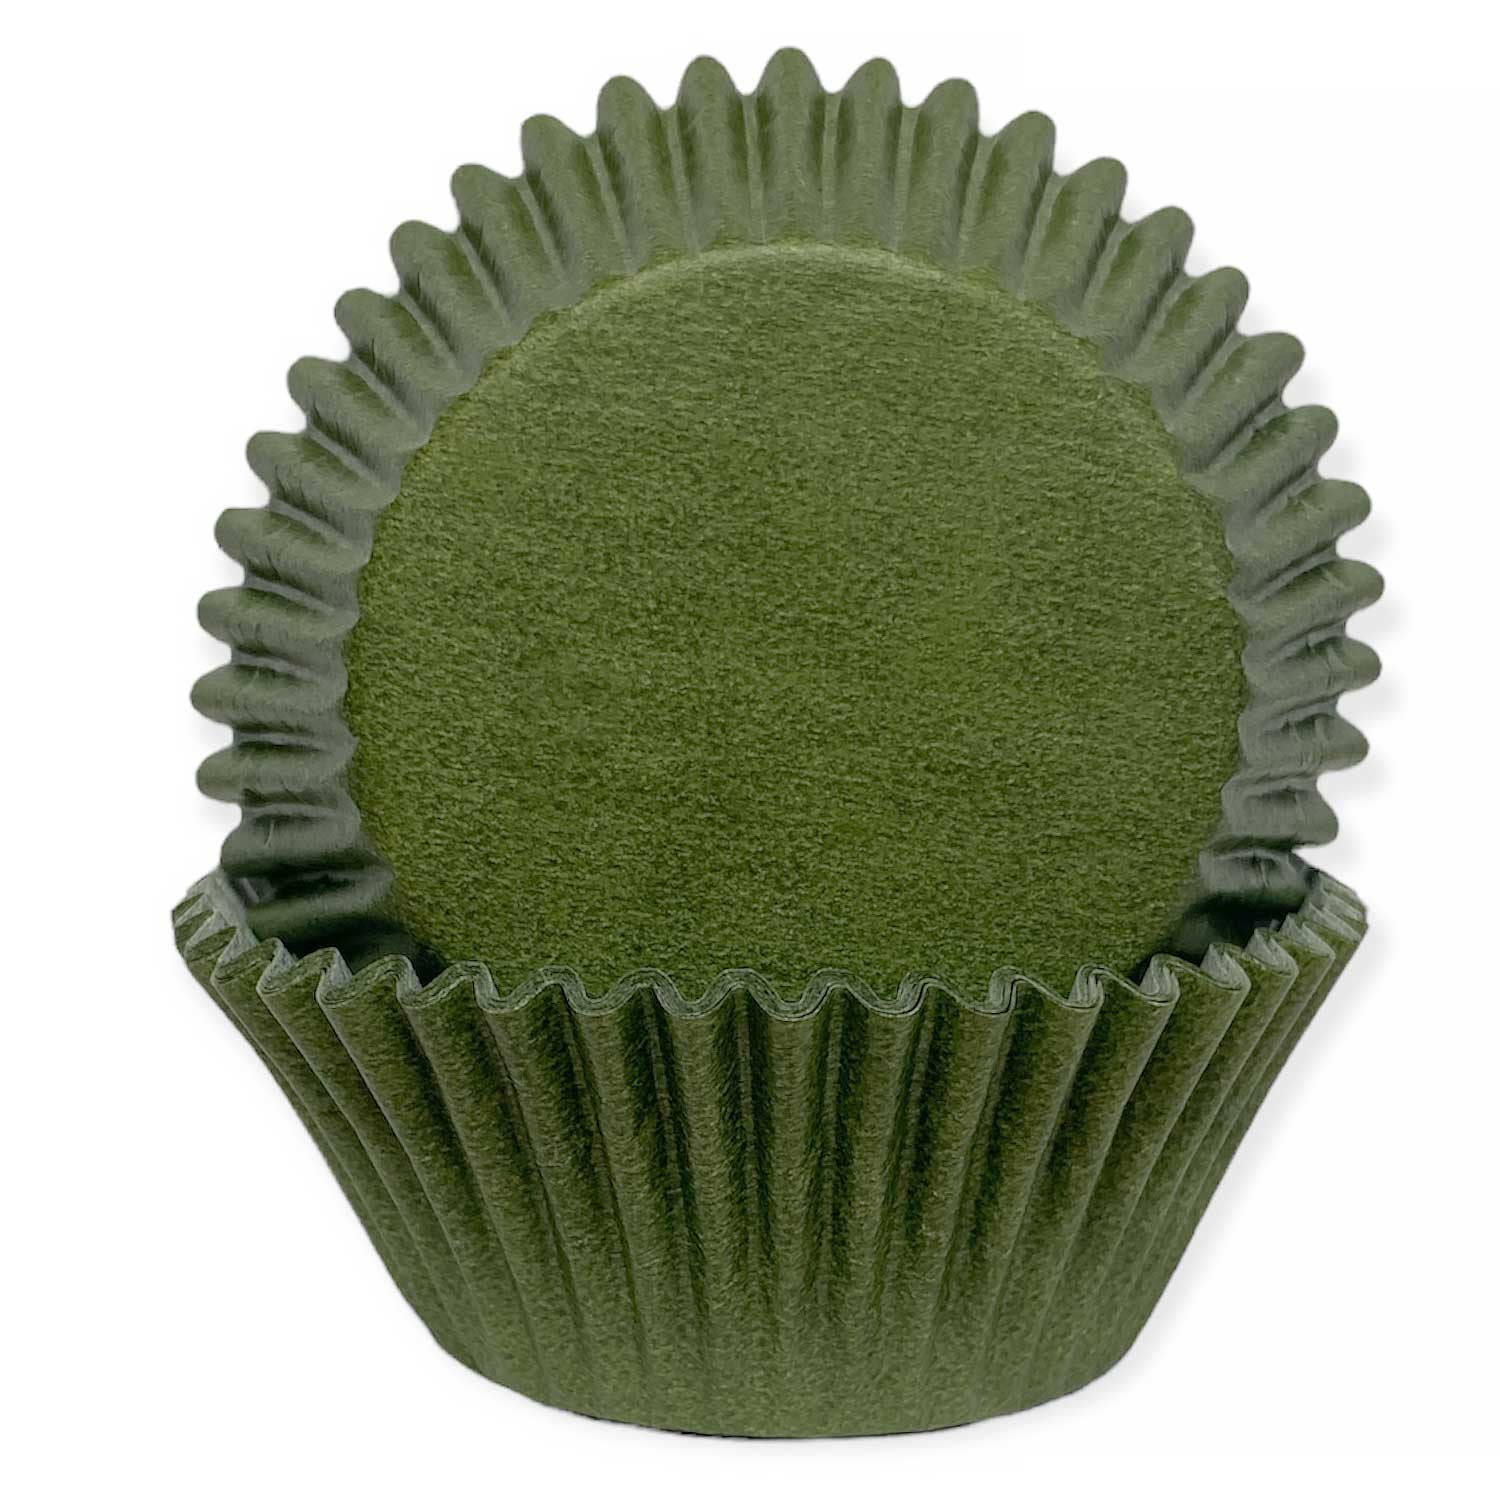 Solid Olive Standard Baking Cup